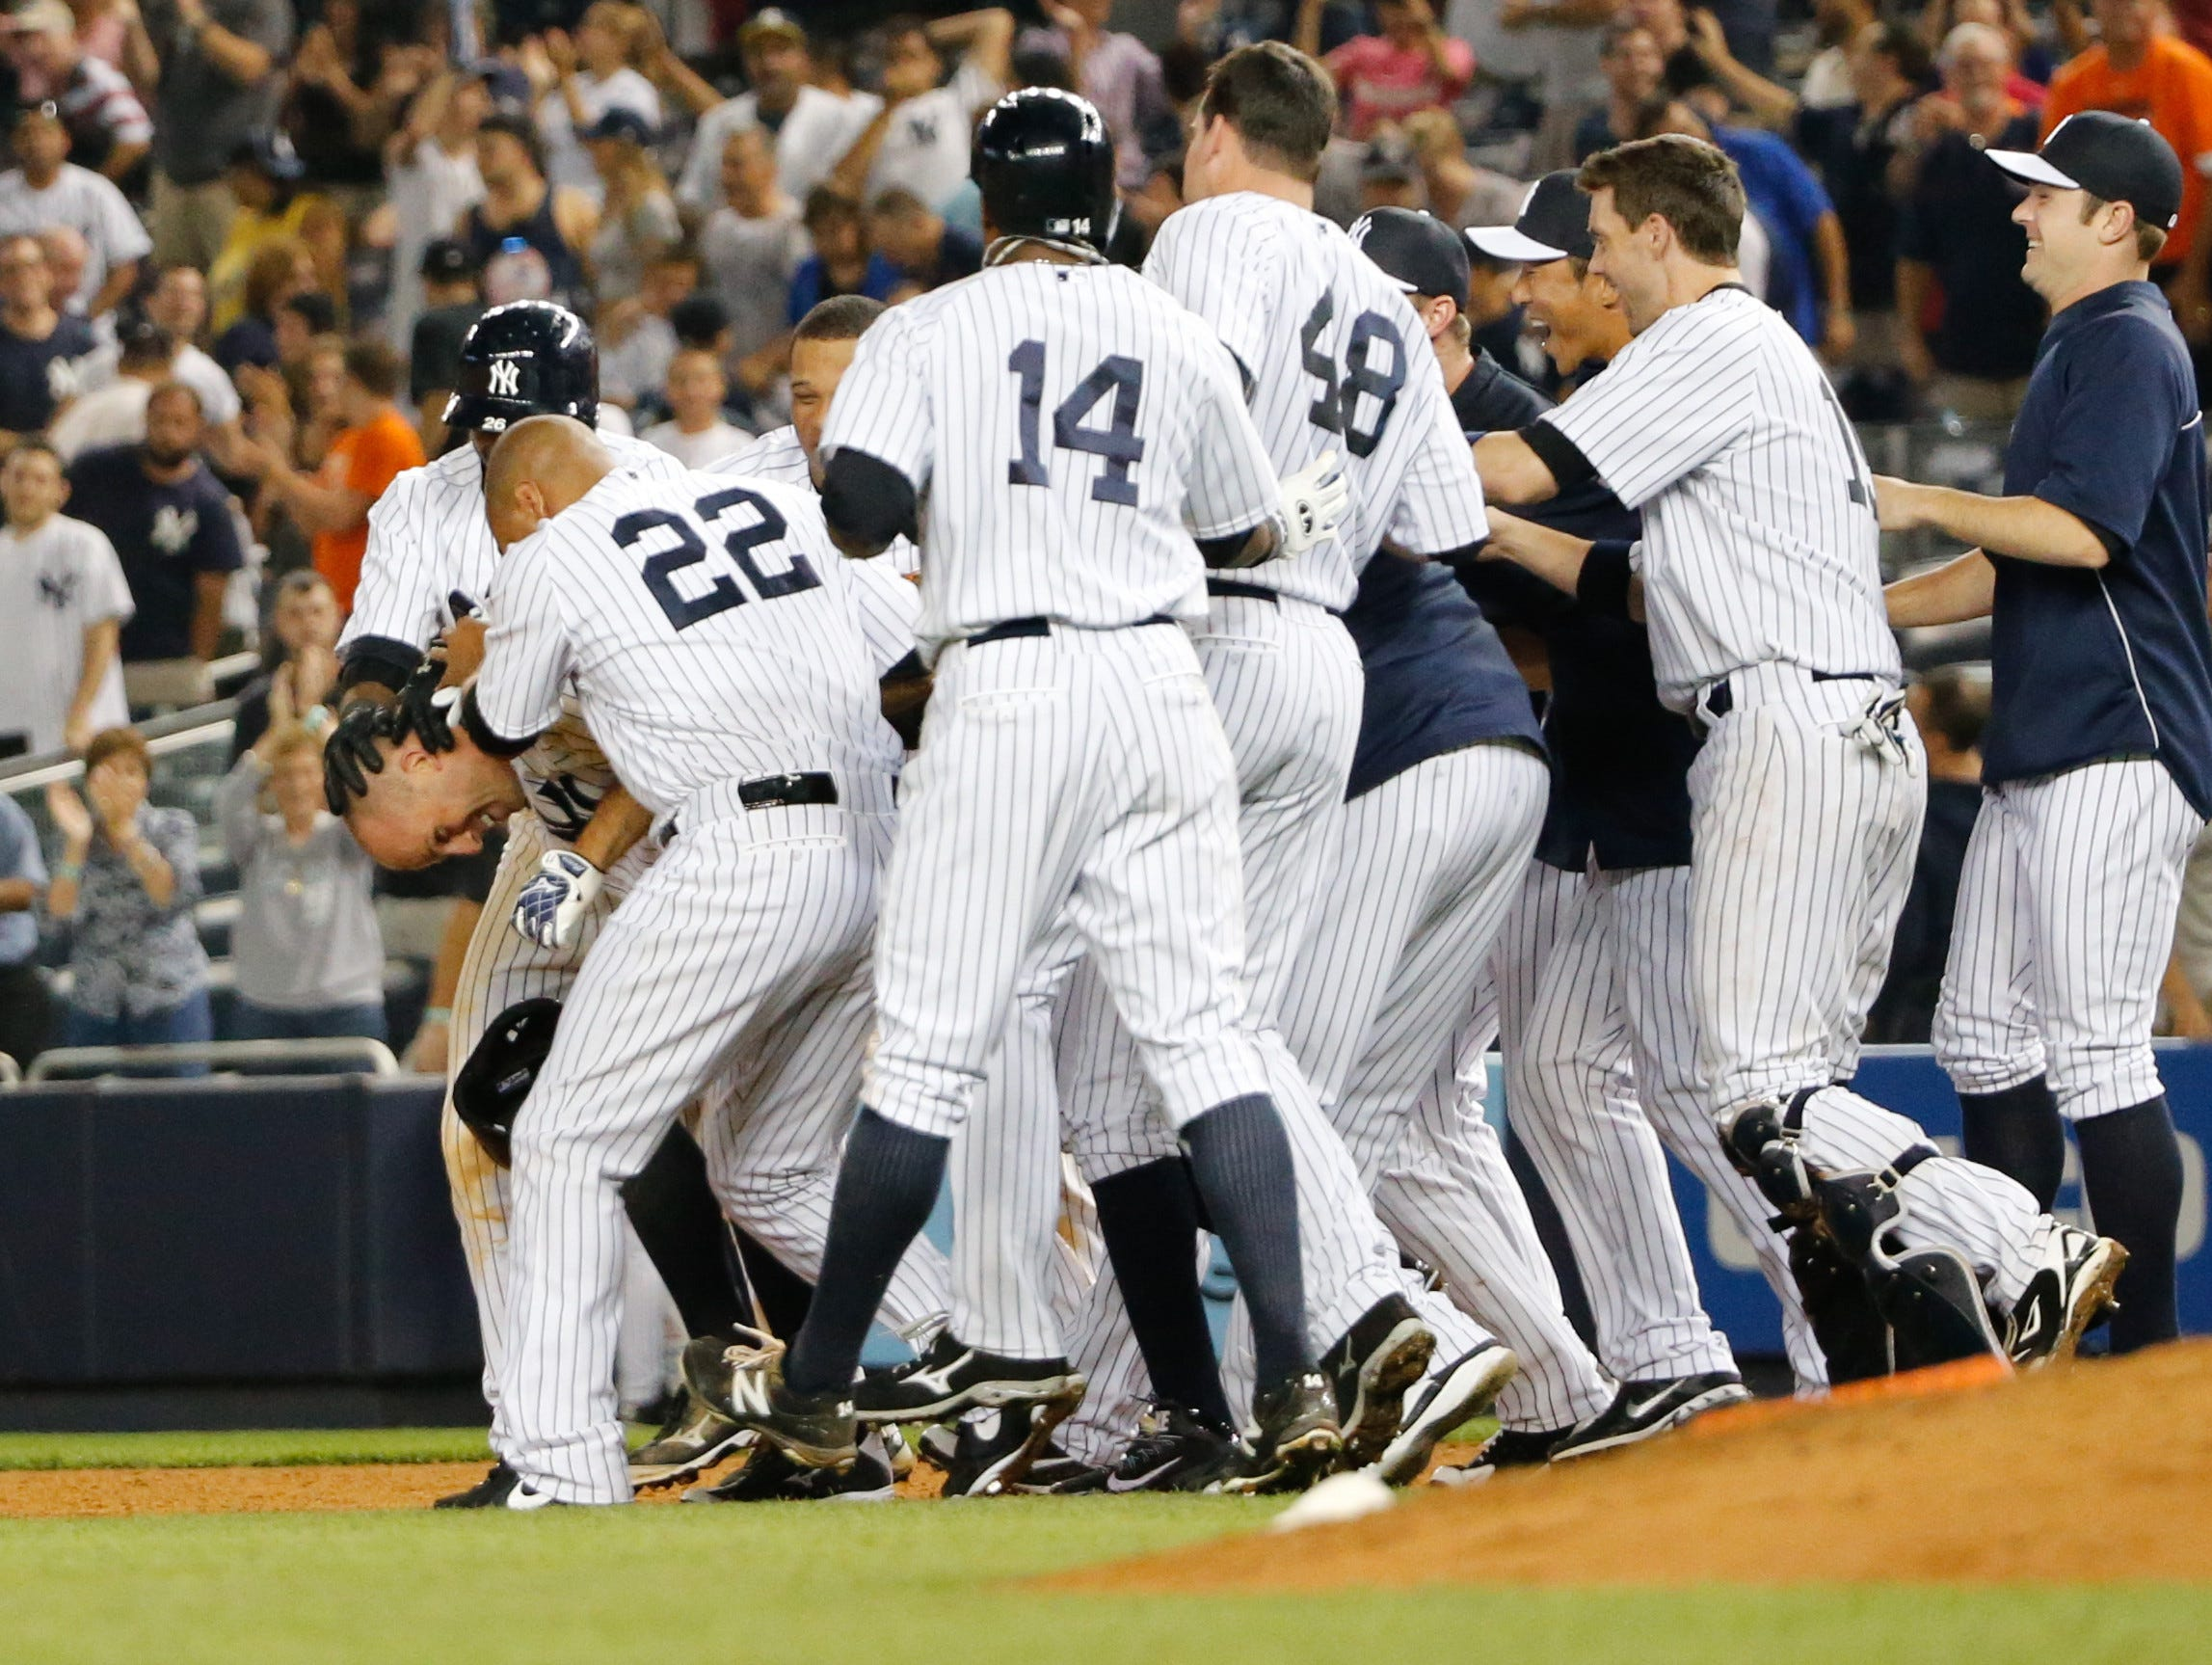 Aug. 9: Teammates mob Yankees center fielder Brett Gardner after his walk-off single in the 10th tenth inning against the Tigers at Yankee Stadium.